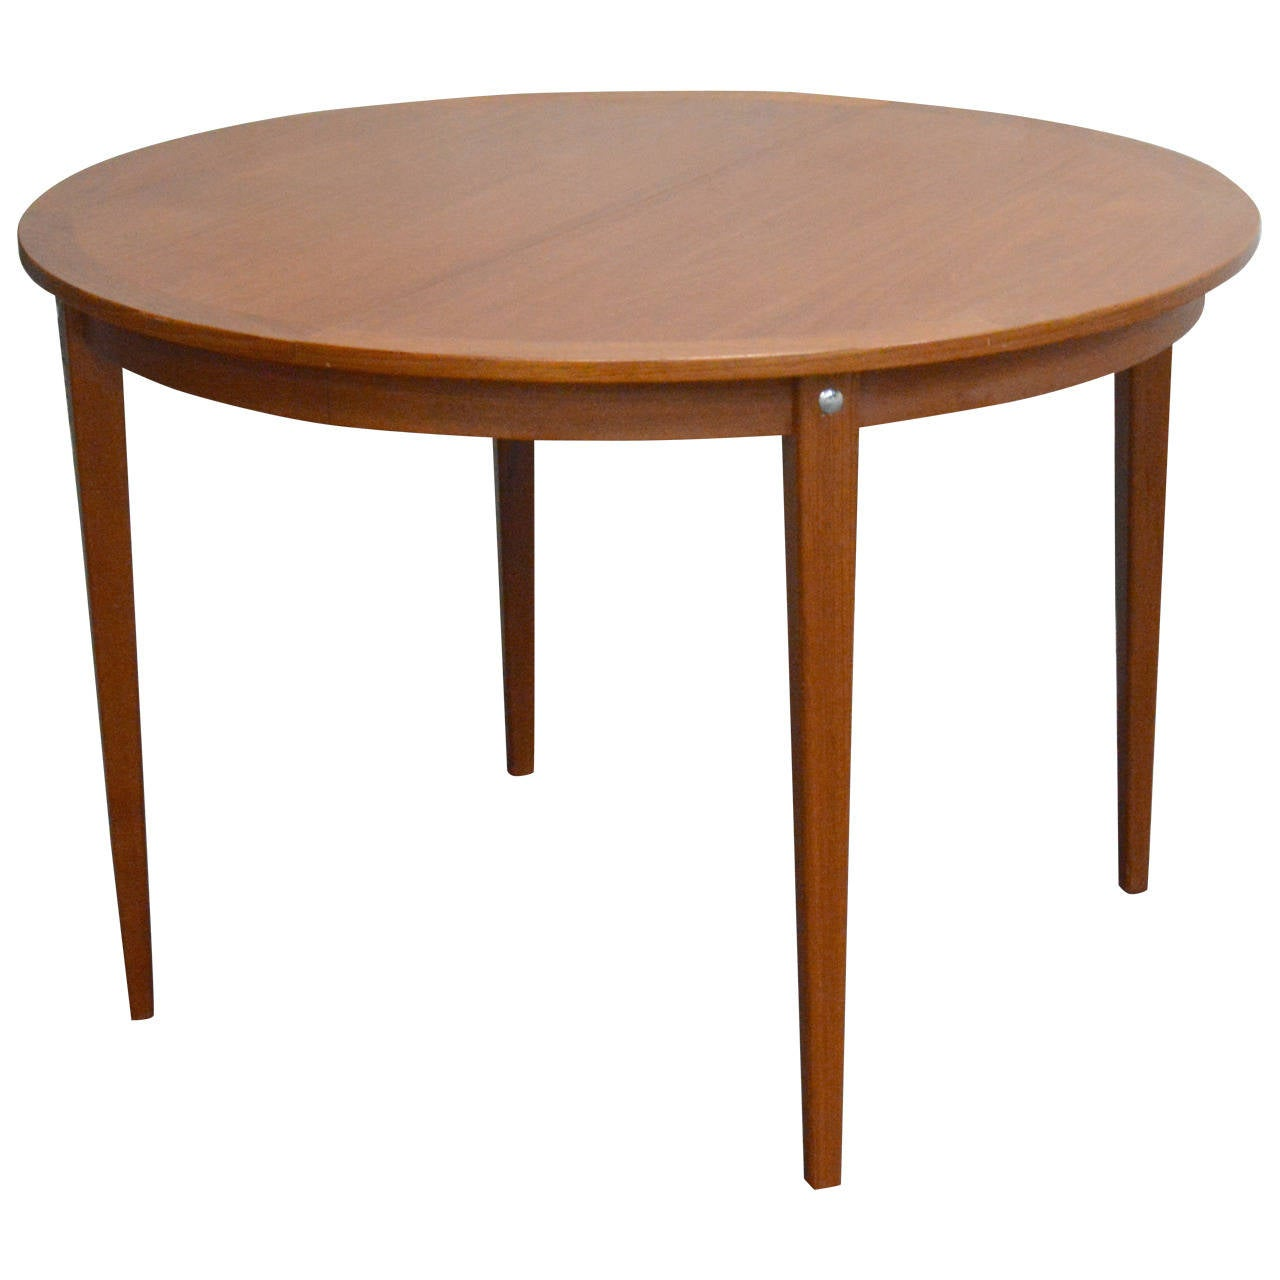 Captivating Mid Century Modern Round Swedish Teak Dining Table 1